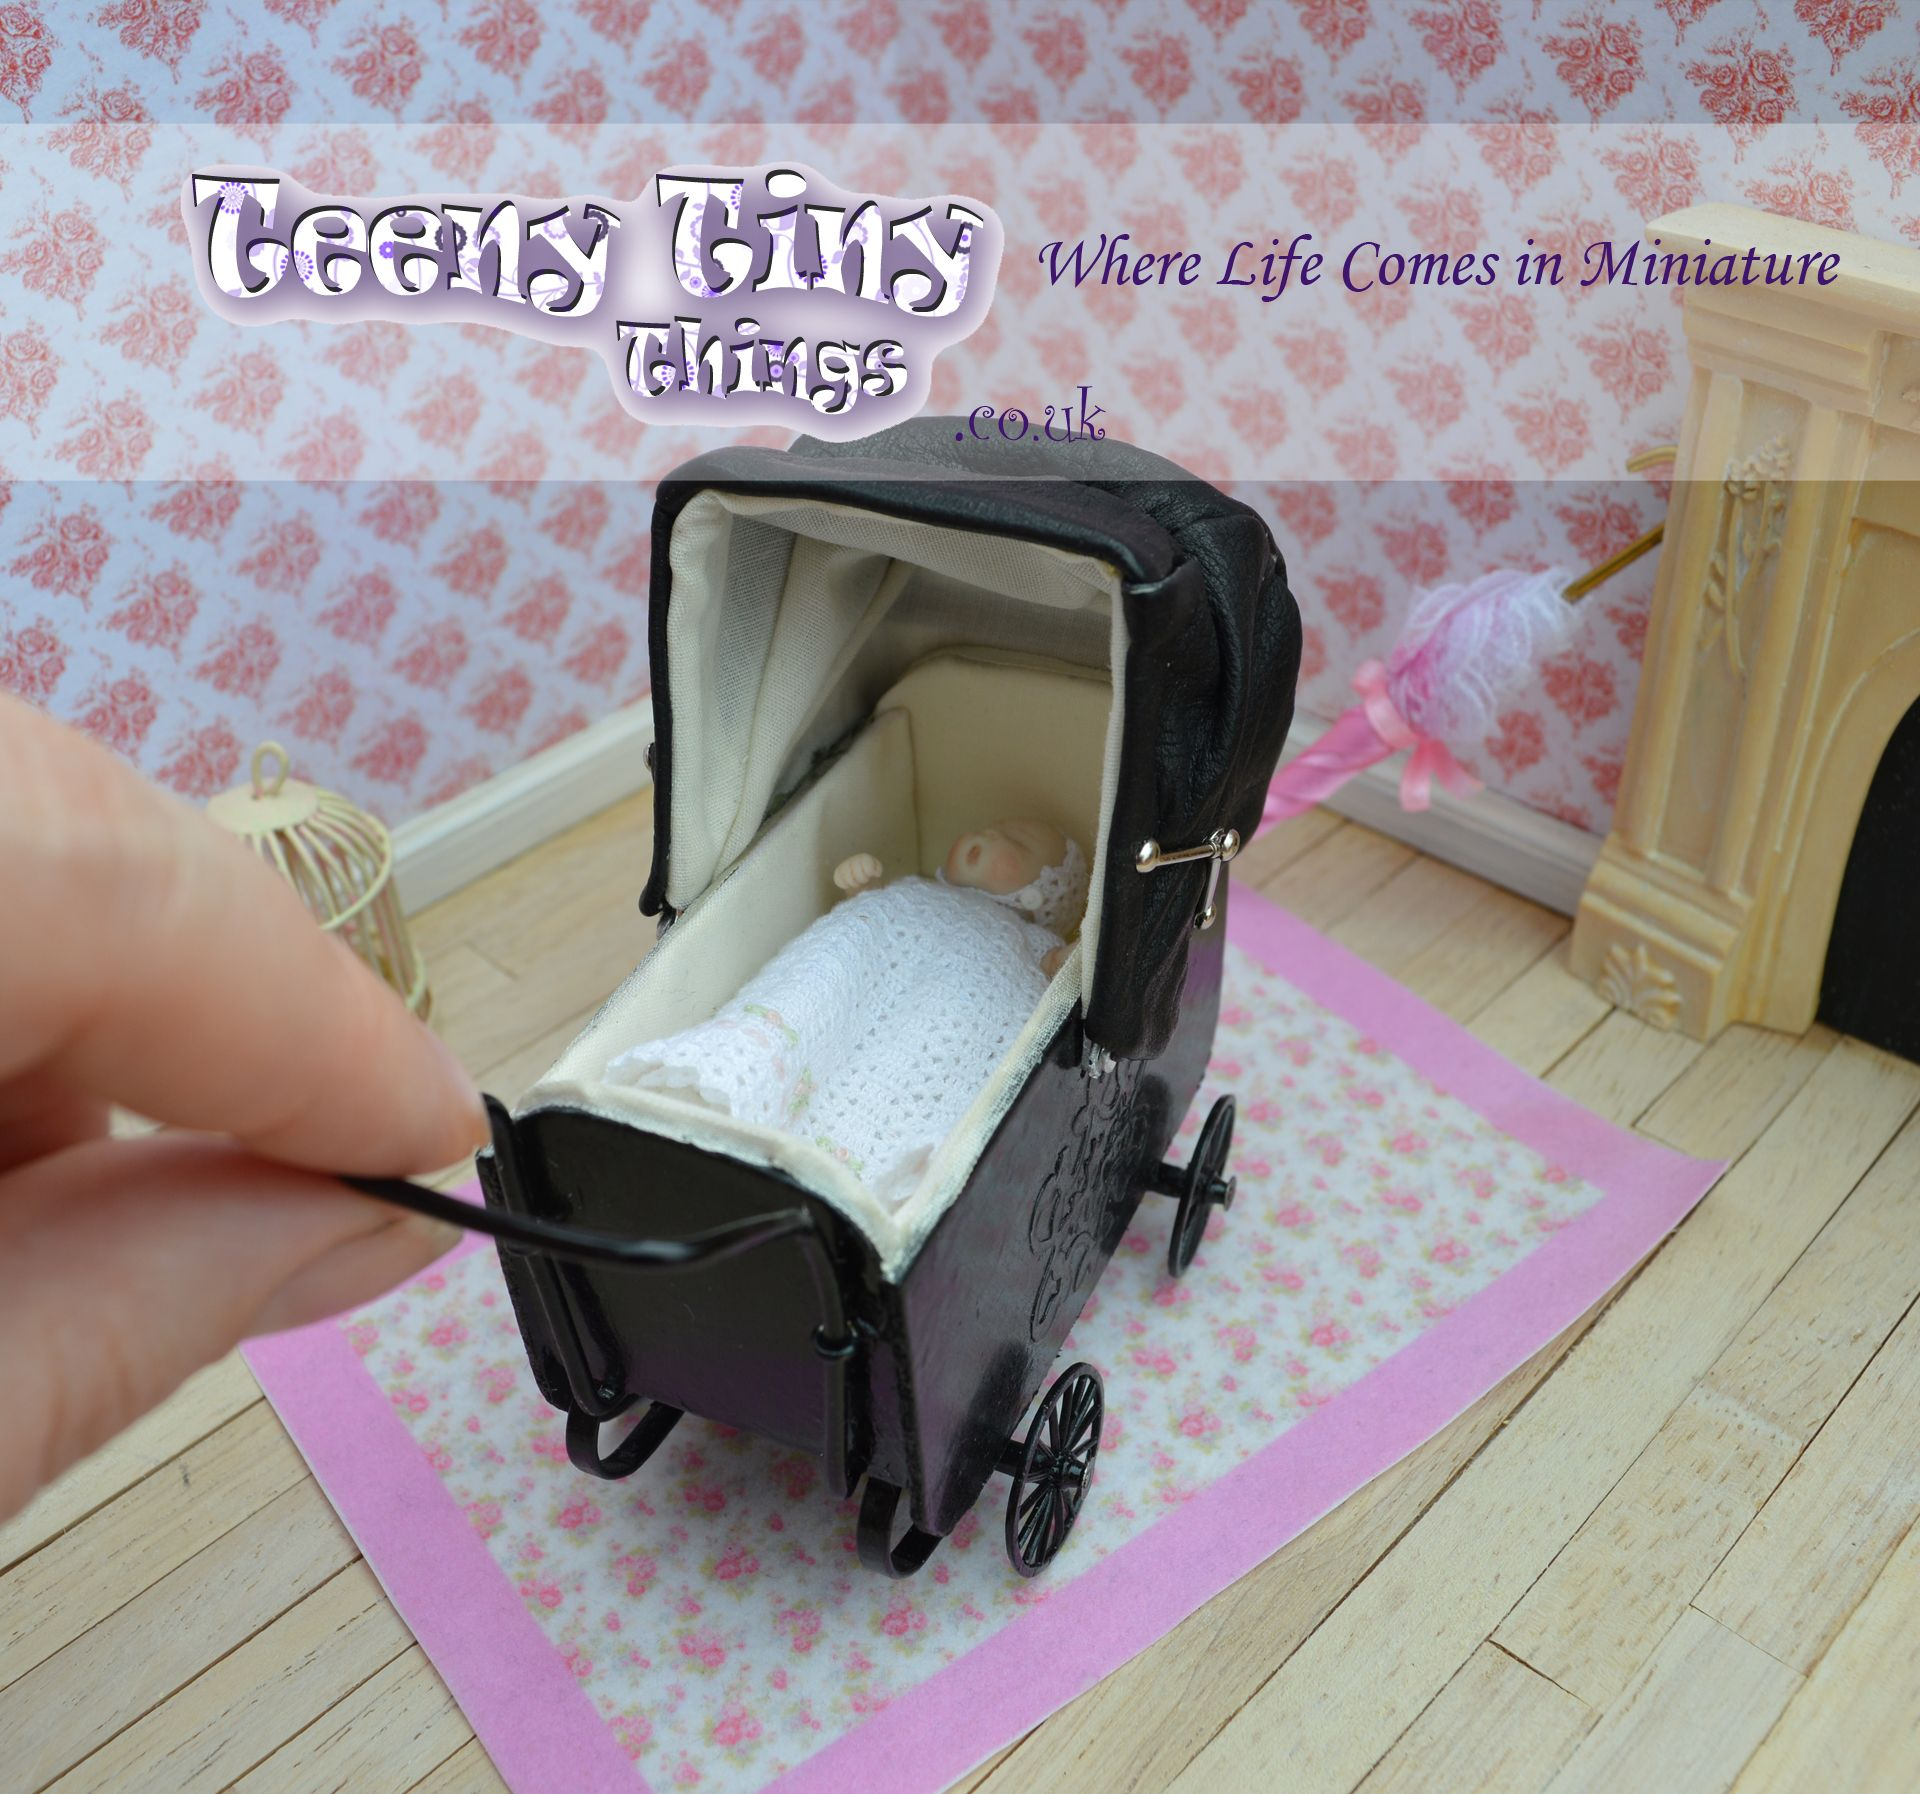 1 12th scale low slung period pram by Teeny Tiny Things